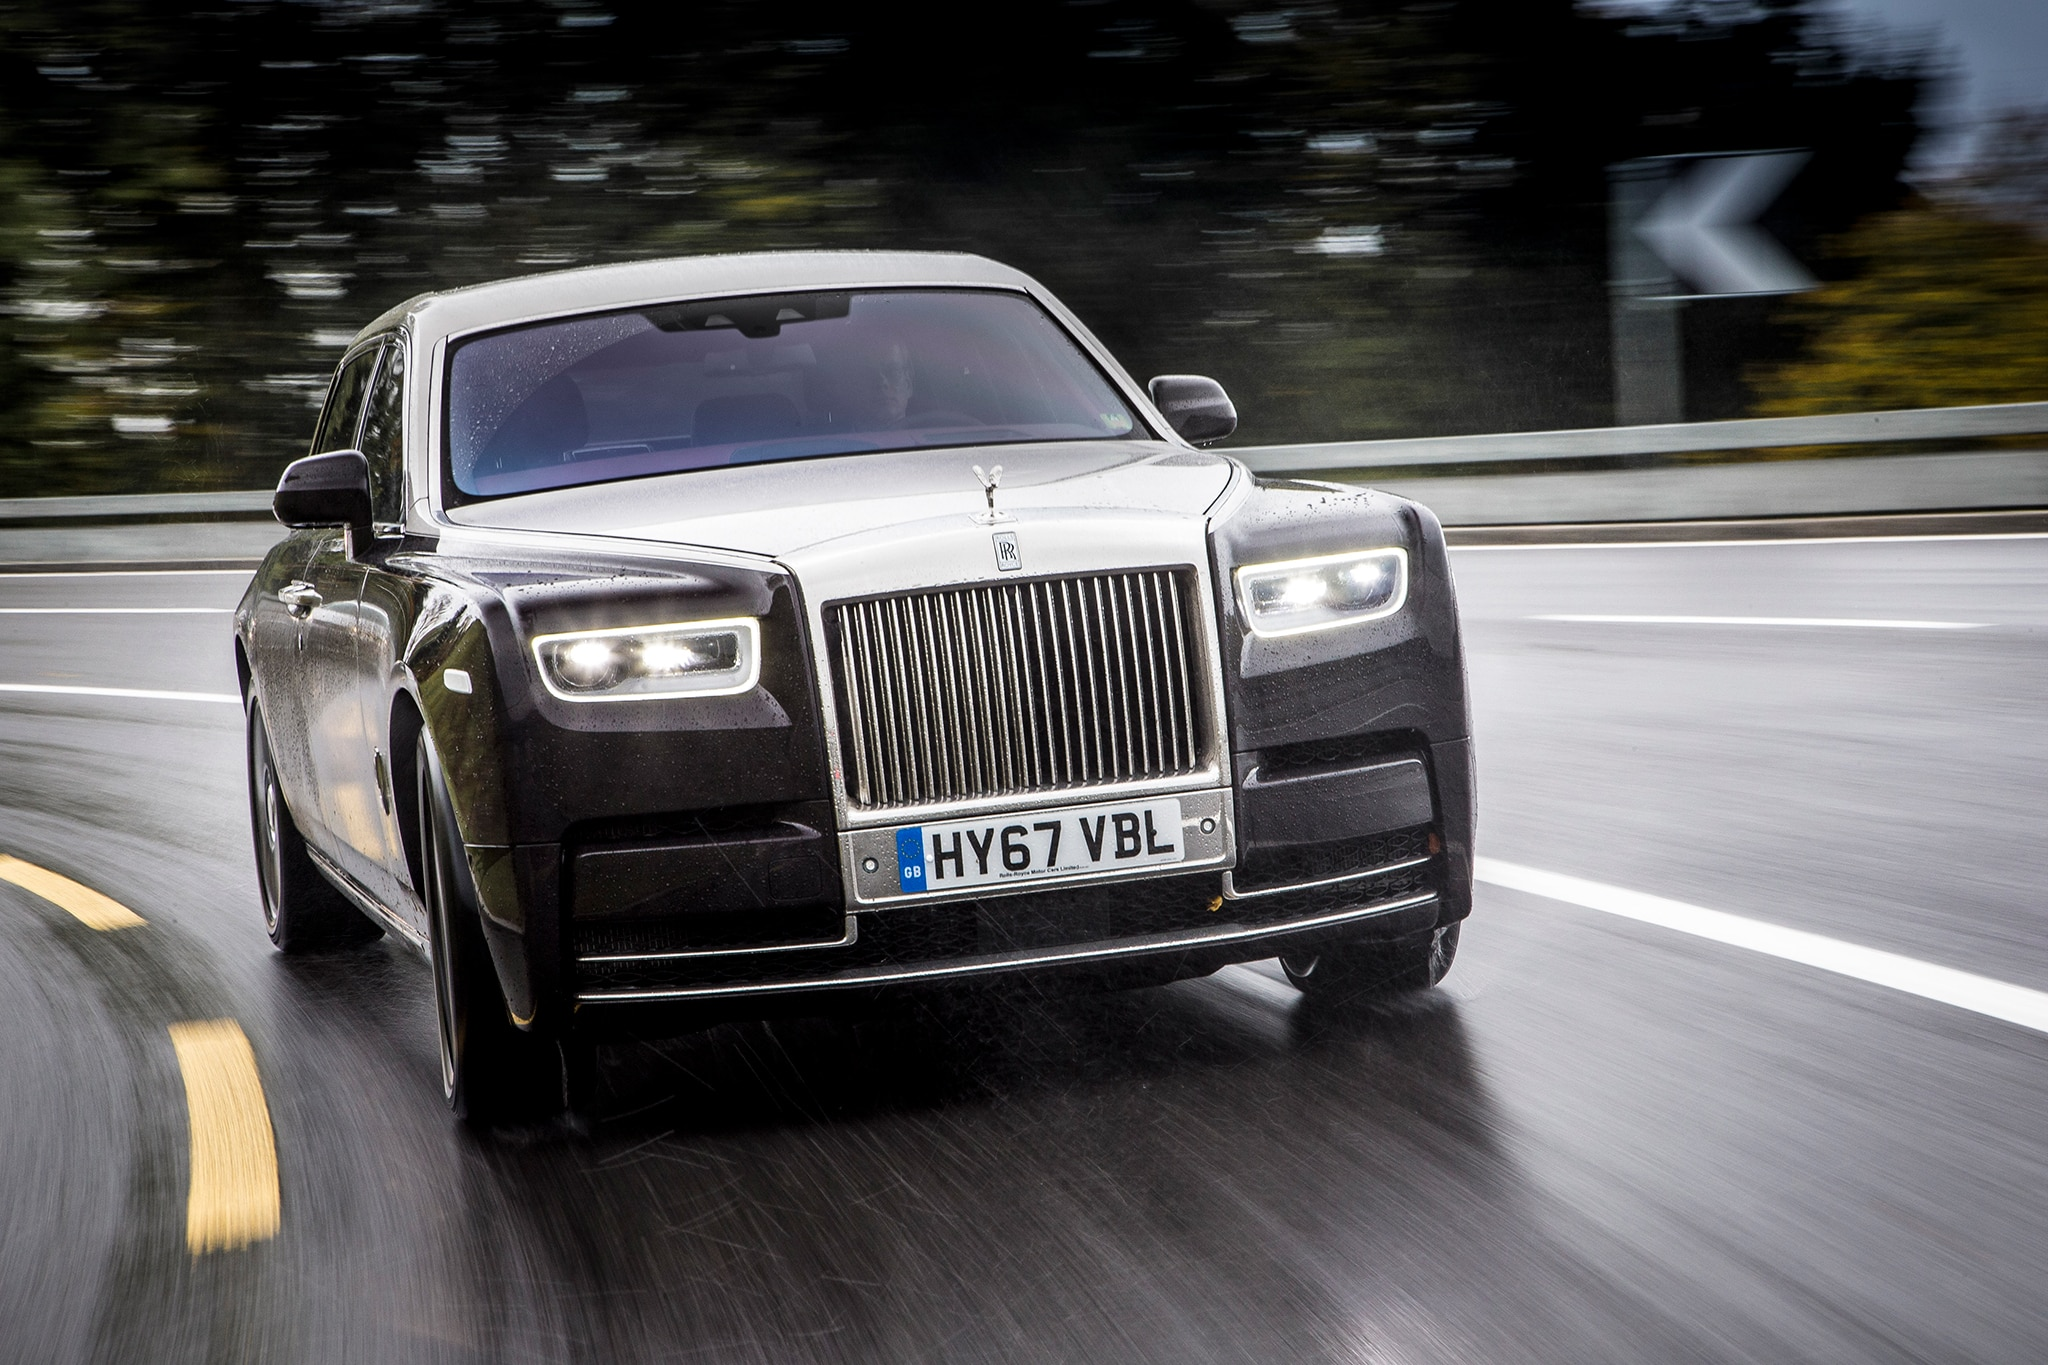 2018 Rolls Royce Phantom VIII Front View In Motion 11